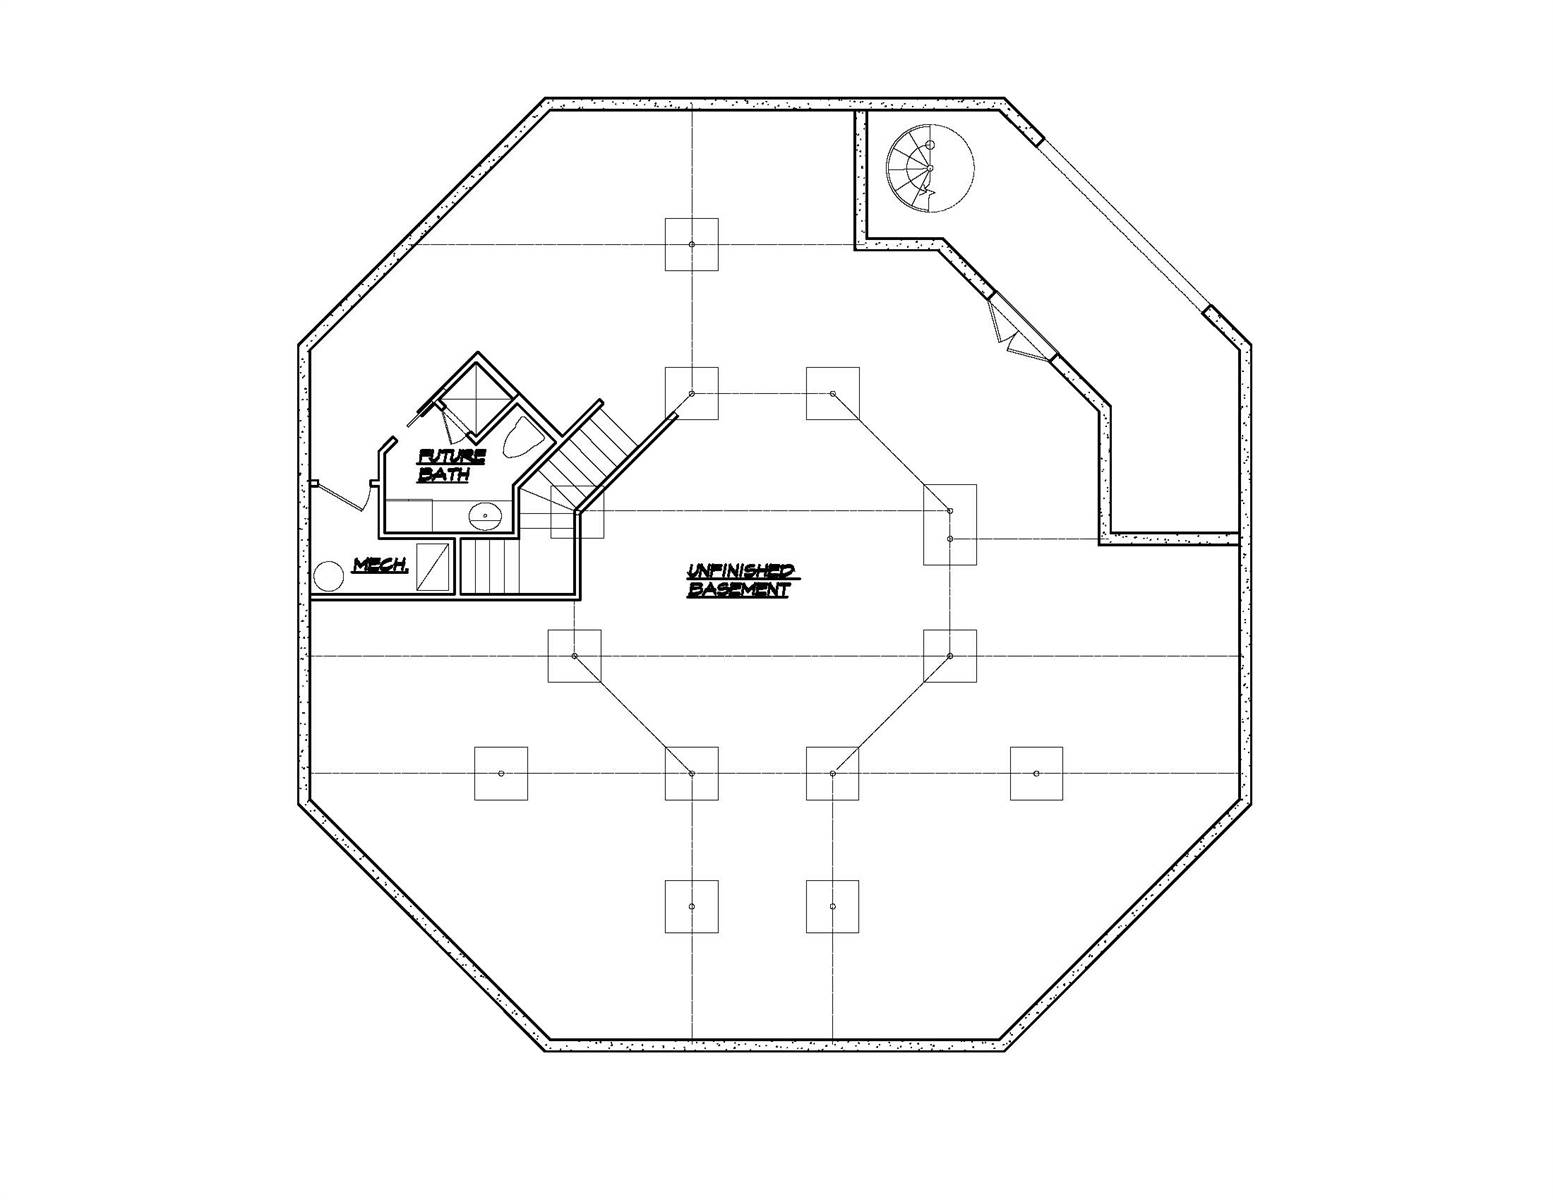 Lower Level Plan image of Unique Modern Octagon Style House Plan 8652: The Octagon